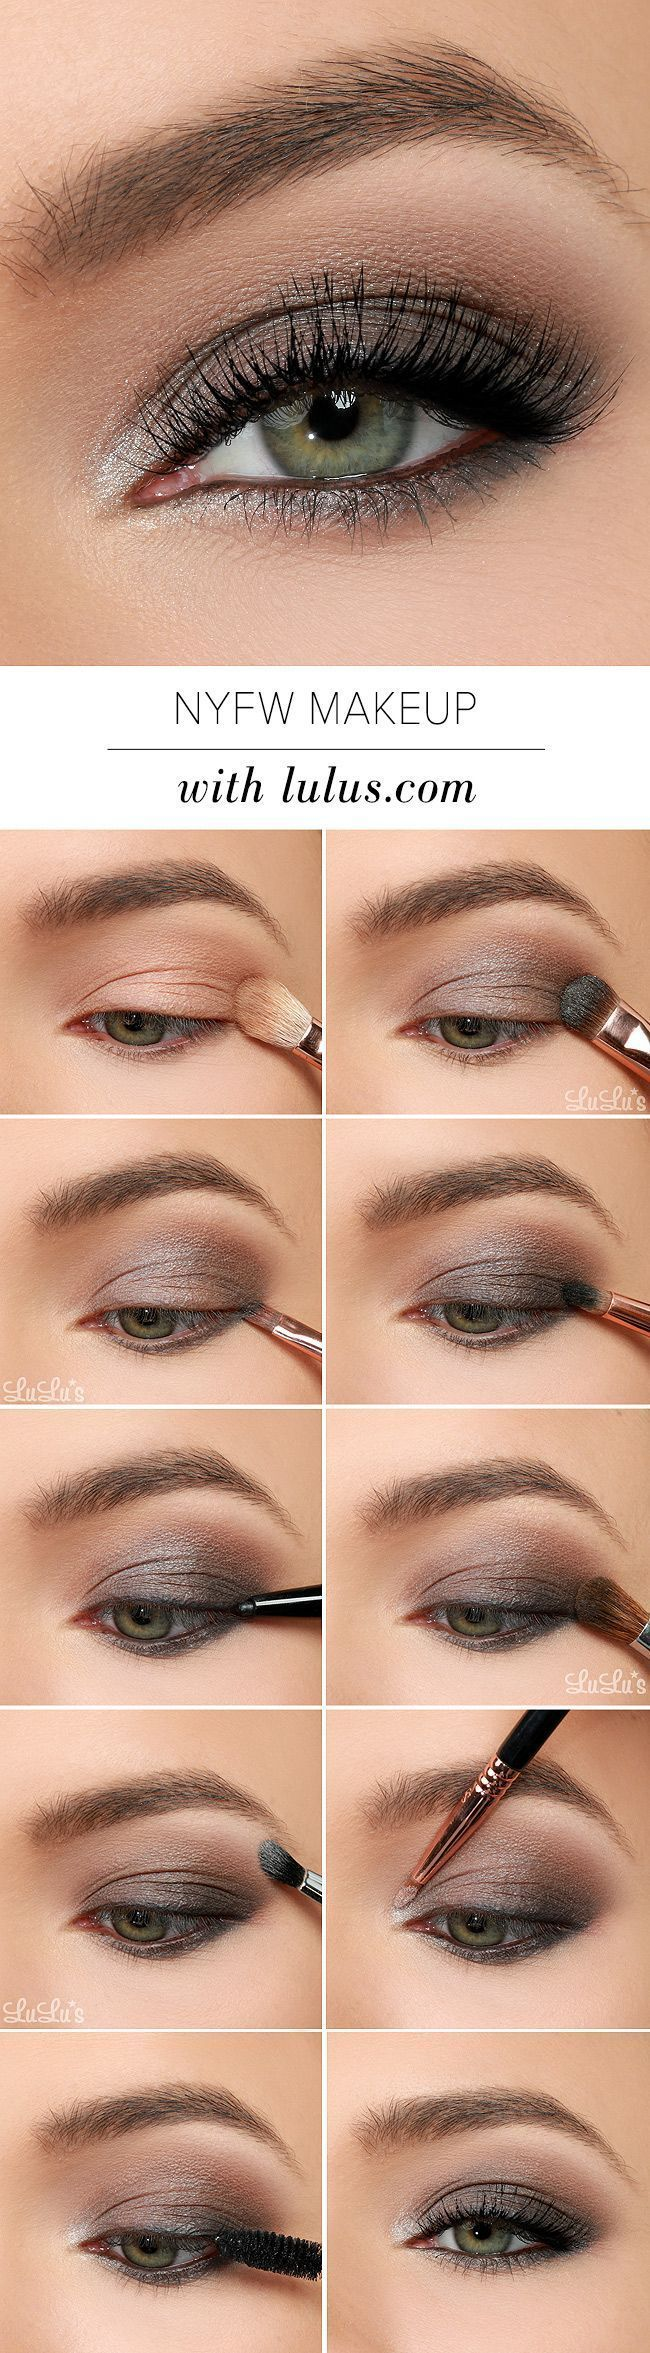 Photo of Wie NYFW inspiriert Eye Make-up Tutorial. Grau & Braun Lidschatten für stumpfe …